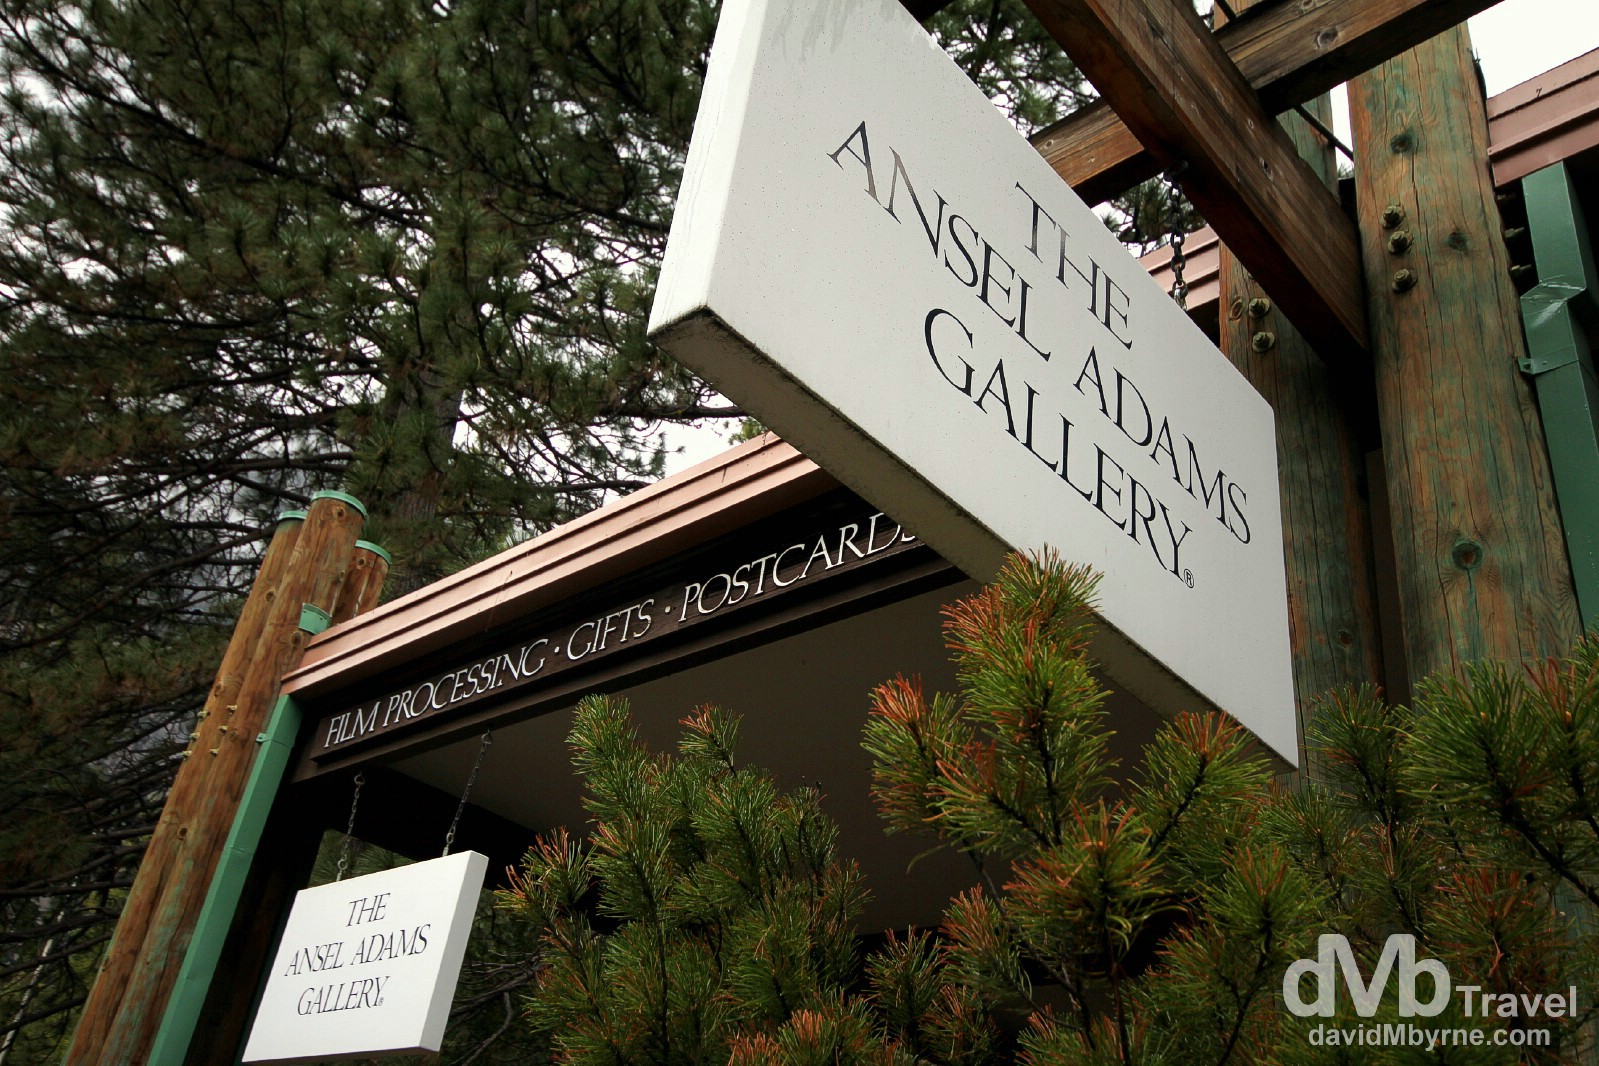 The Ansel Adams Gallery in Yosemite Valley, Yosemite National Park, California, USA. April 1st 2013.